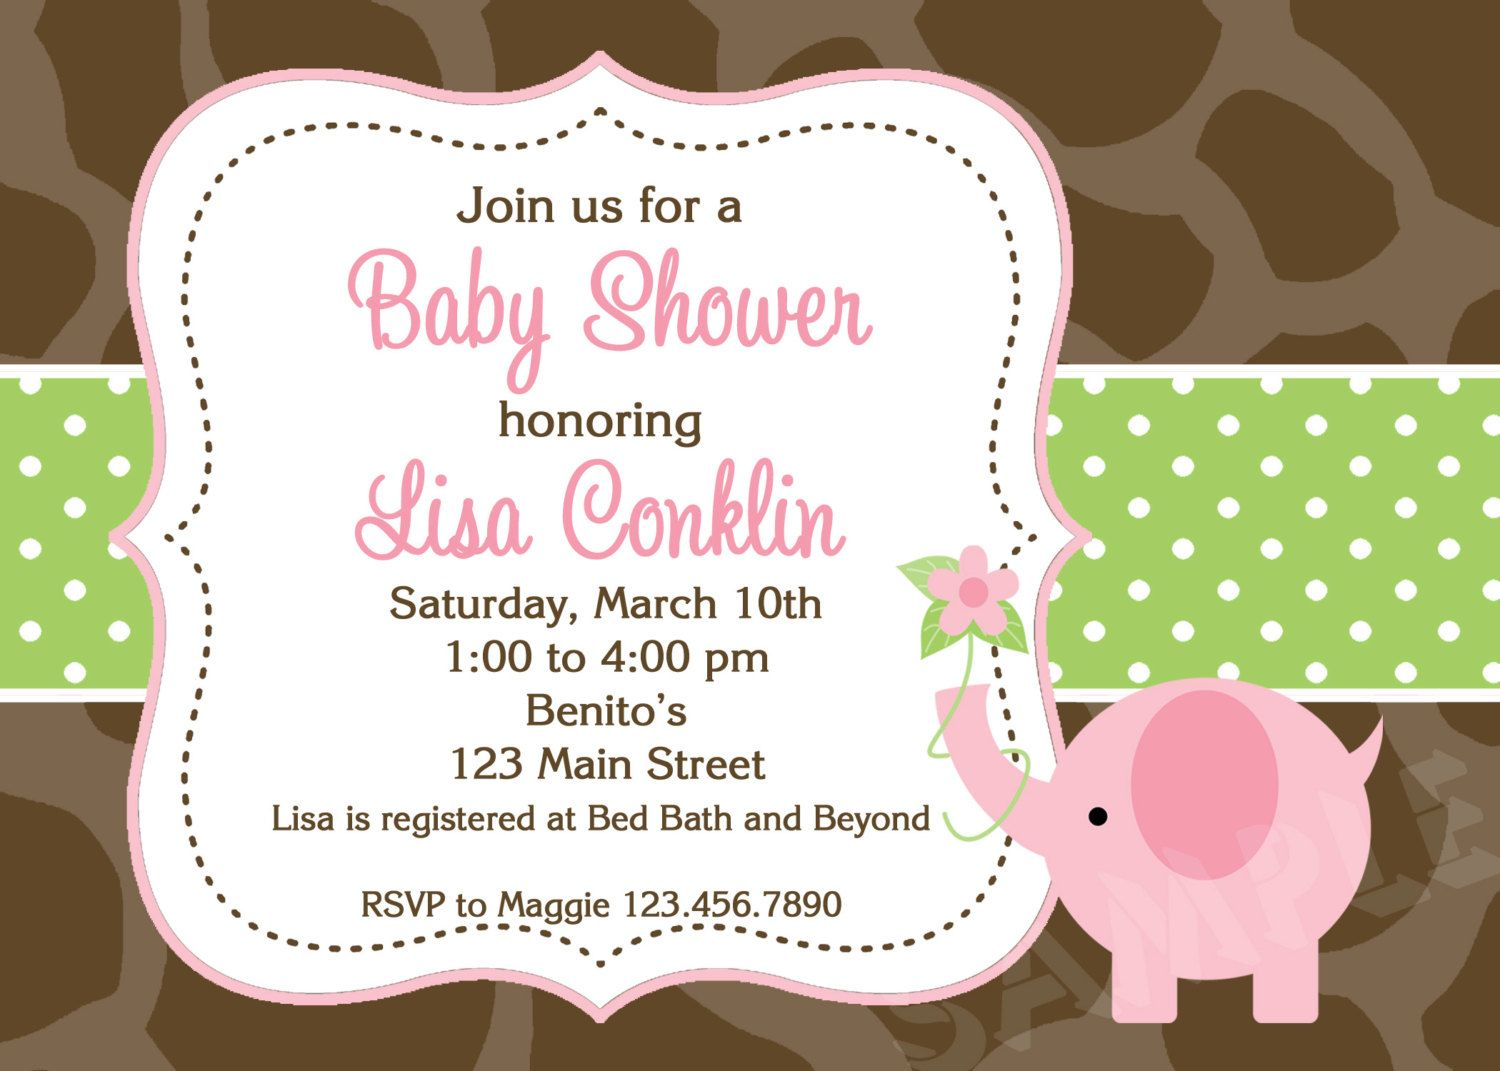 Create own make your own baby shower invitations smart design of create own make your own baby shower invitations smart design of silverlininginvitations filmwisefo